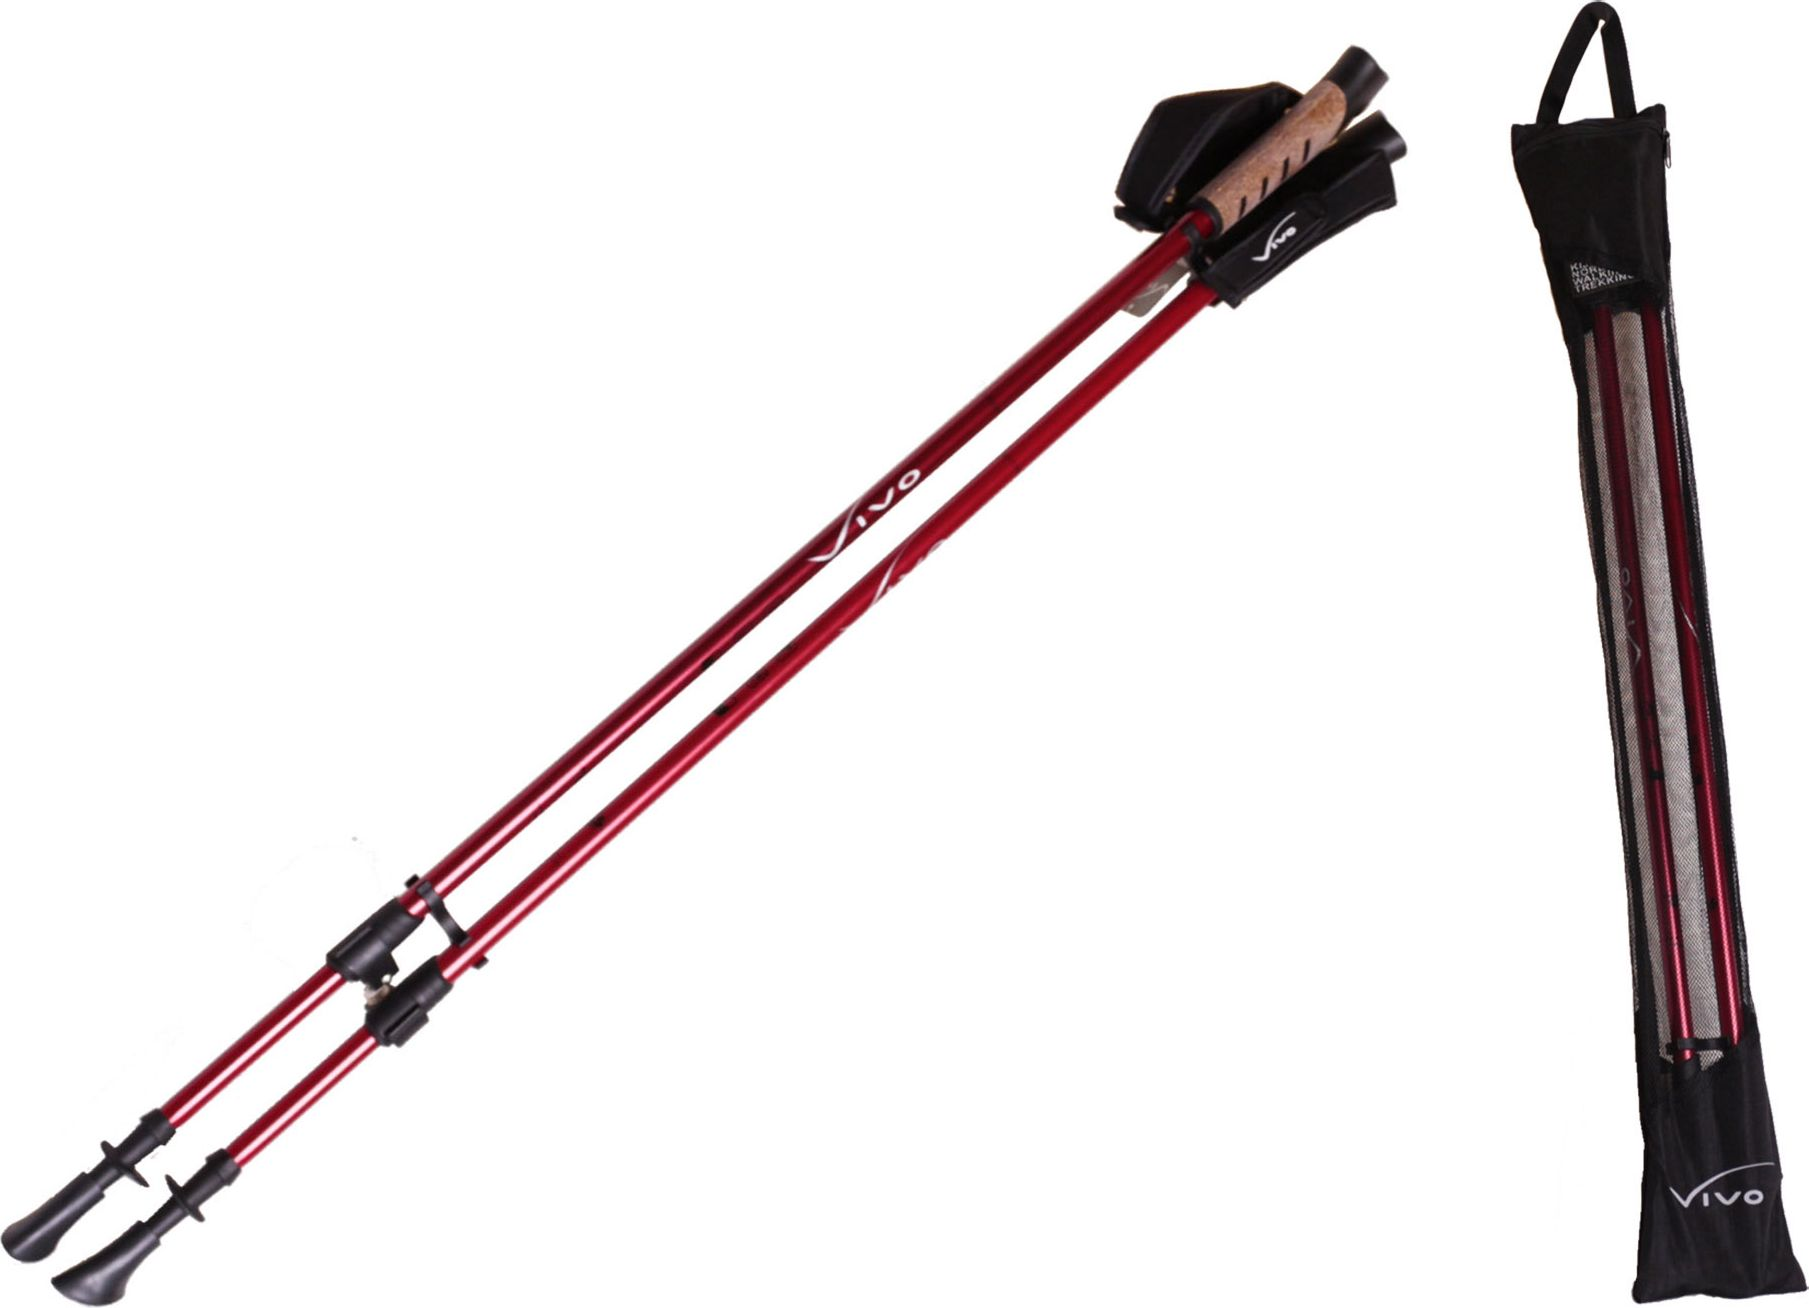 VIVO Nordic Walking Poles NW203 red (4575803)